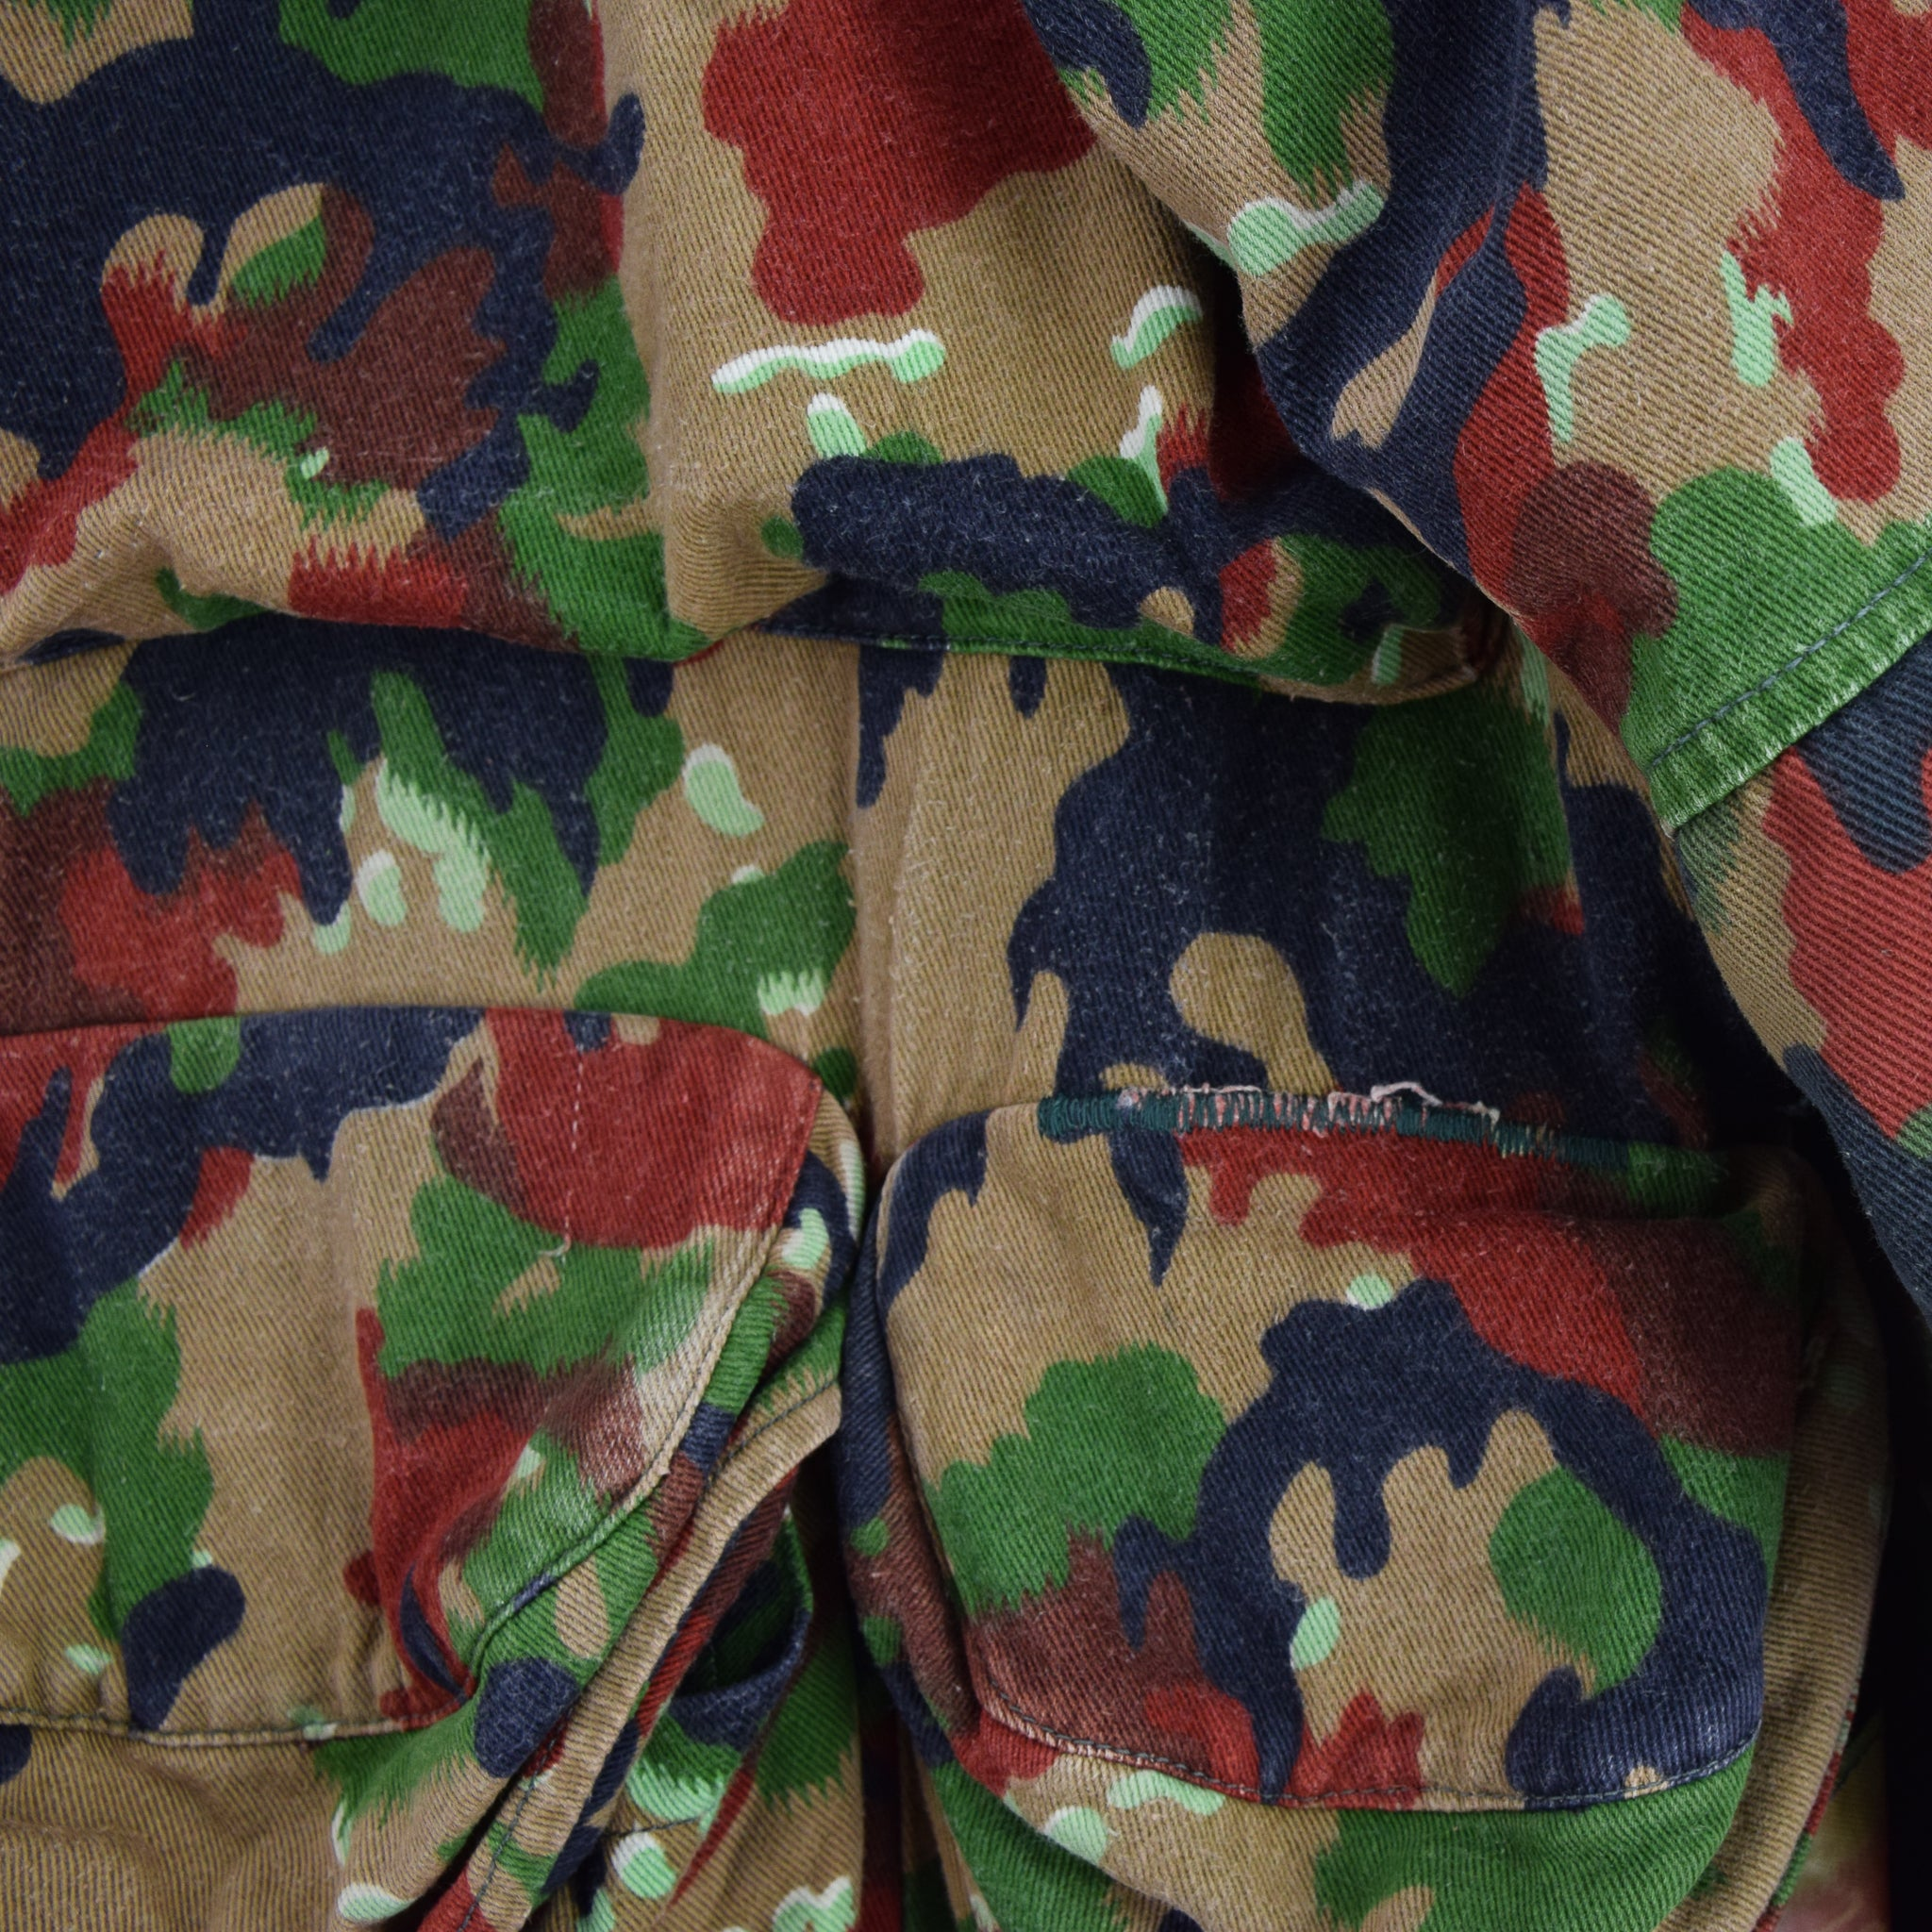 Vintage 70s Swiss Army Alpenflage Camo Sniper Combat Field Jacket S / M pockets